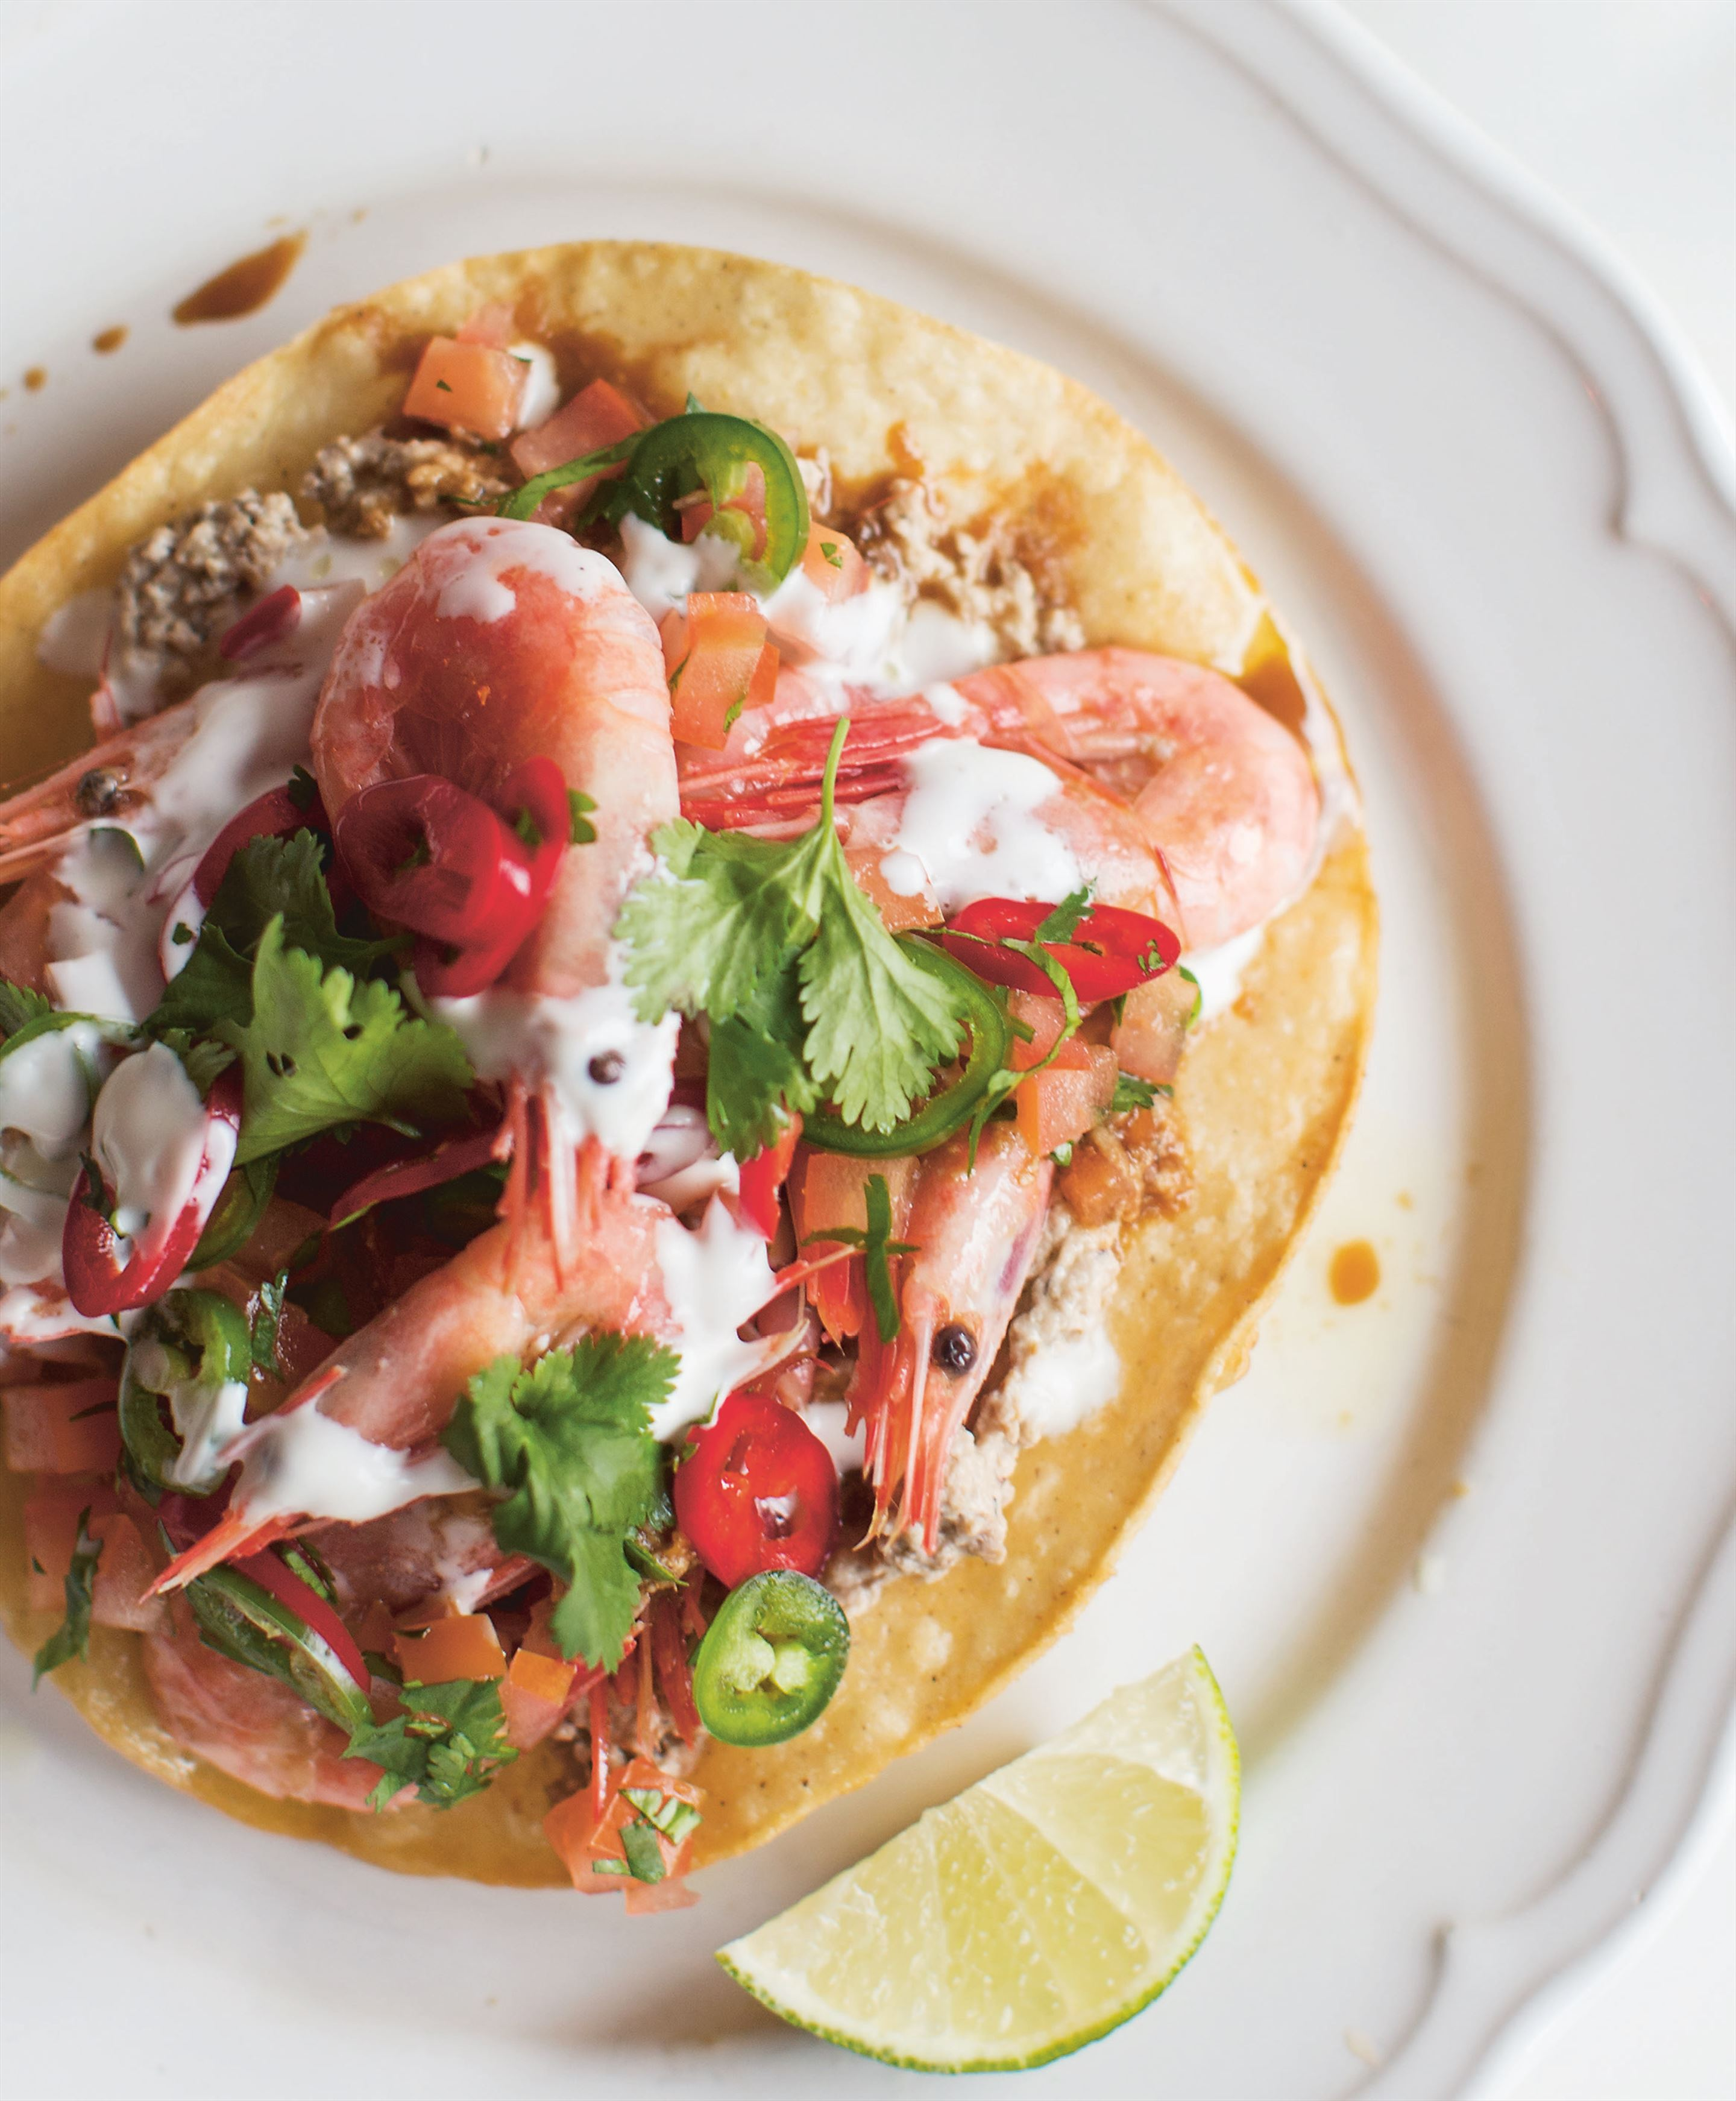 Pickled shrimp tostadas with salsa borracha